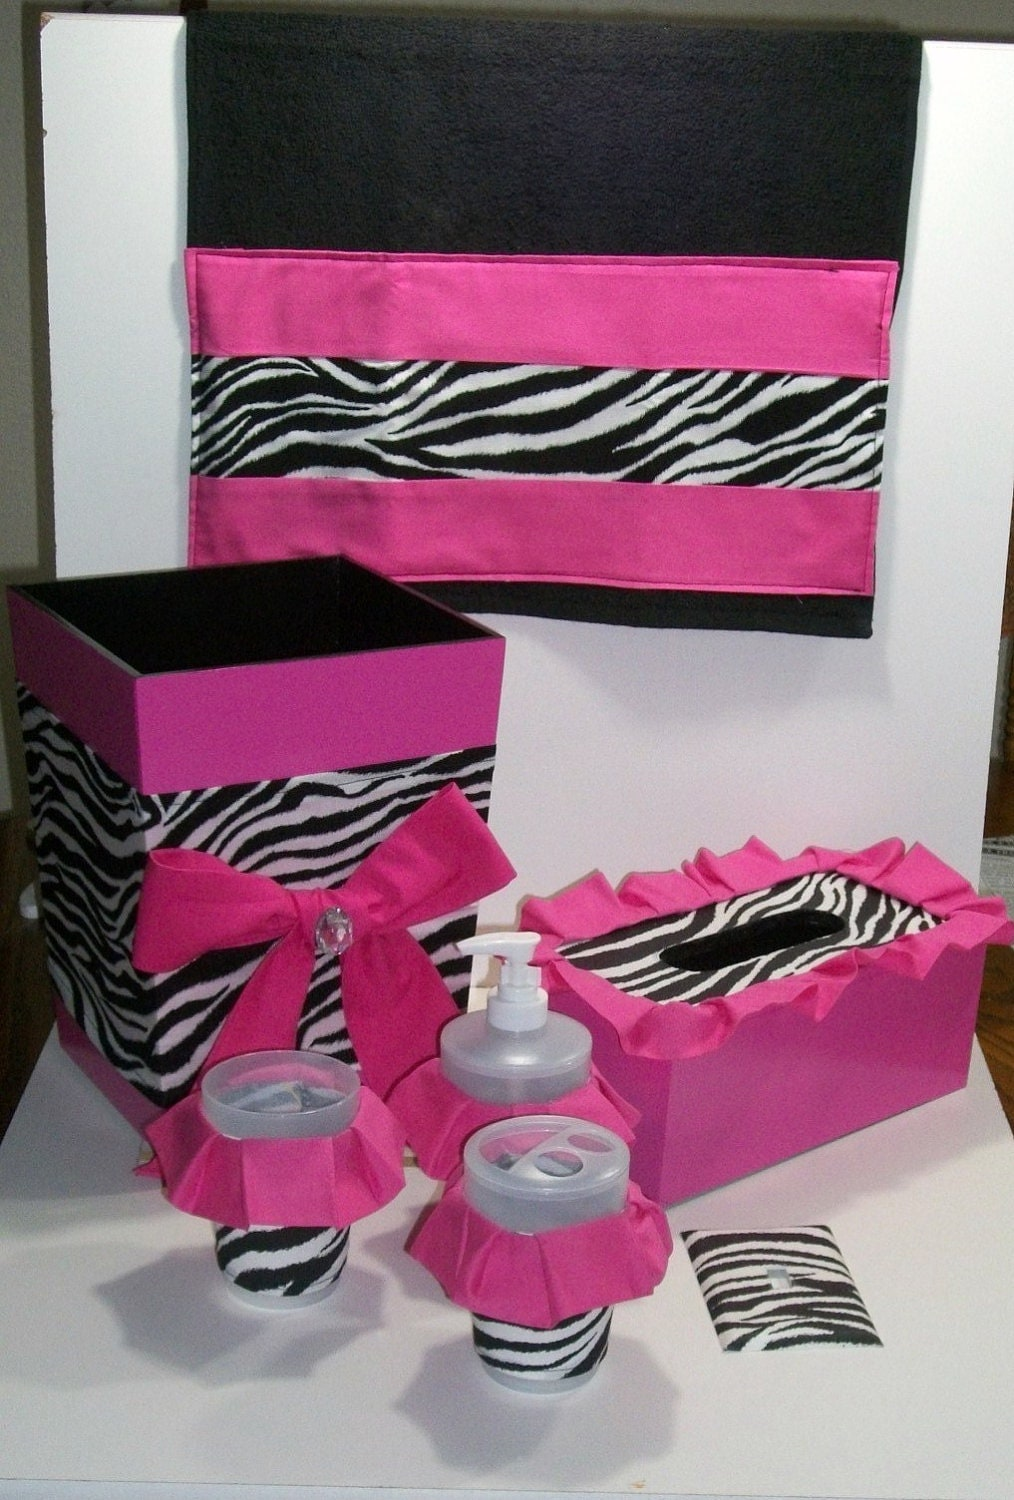 Zebra Bathroom Ideas : PINK BATHROOM SET » Bathroom Design Ideas